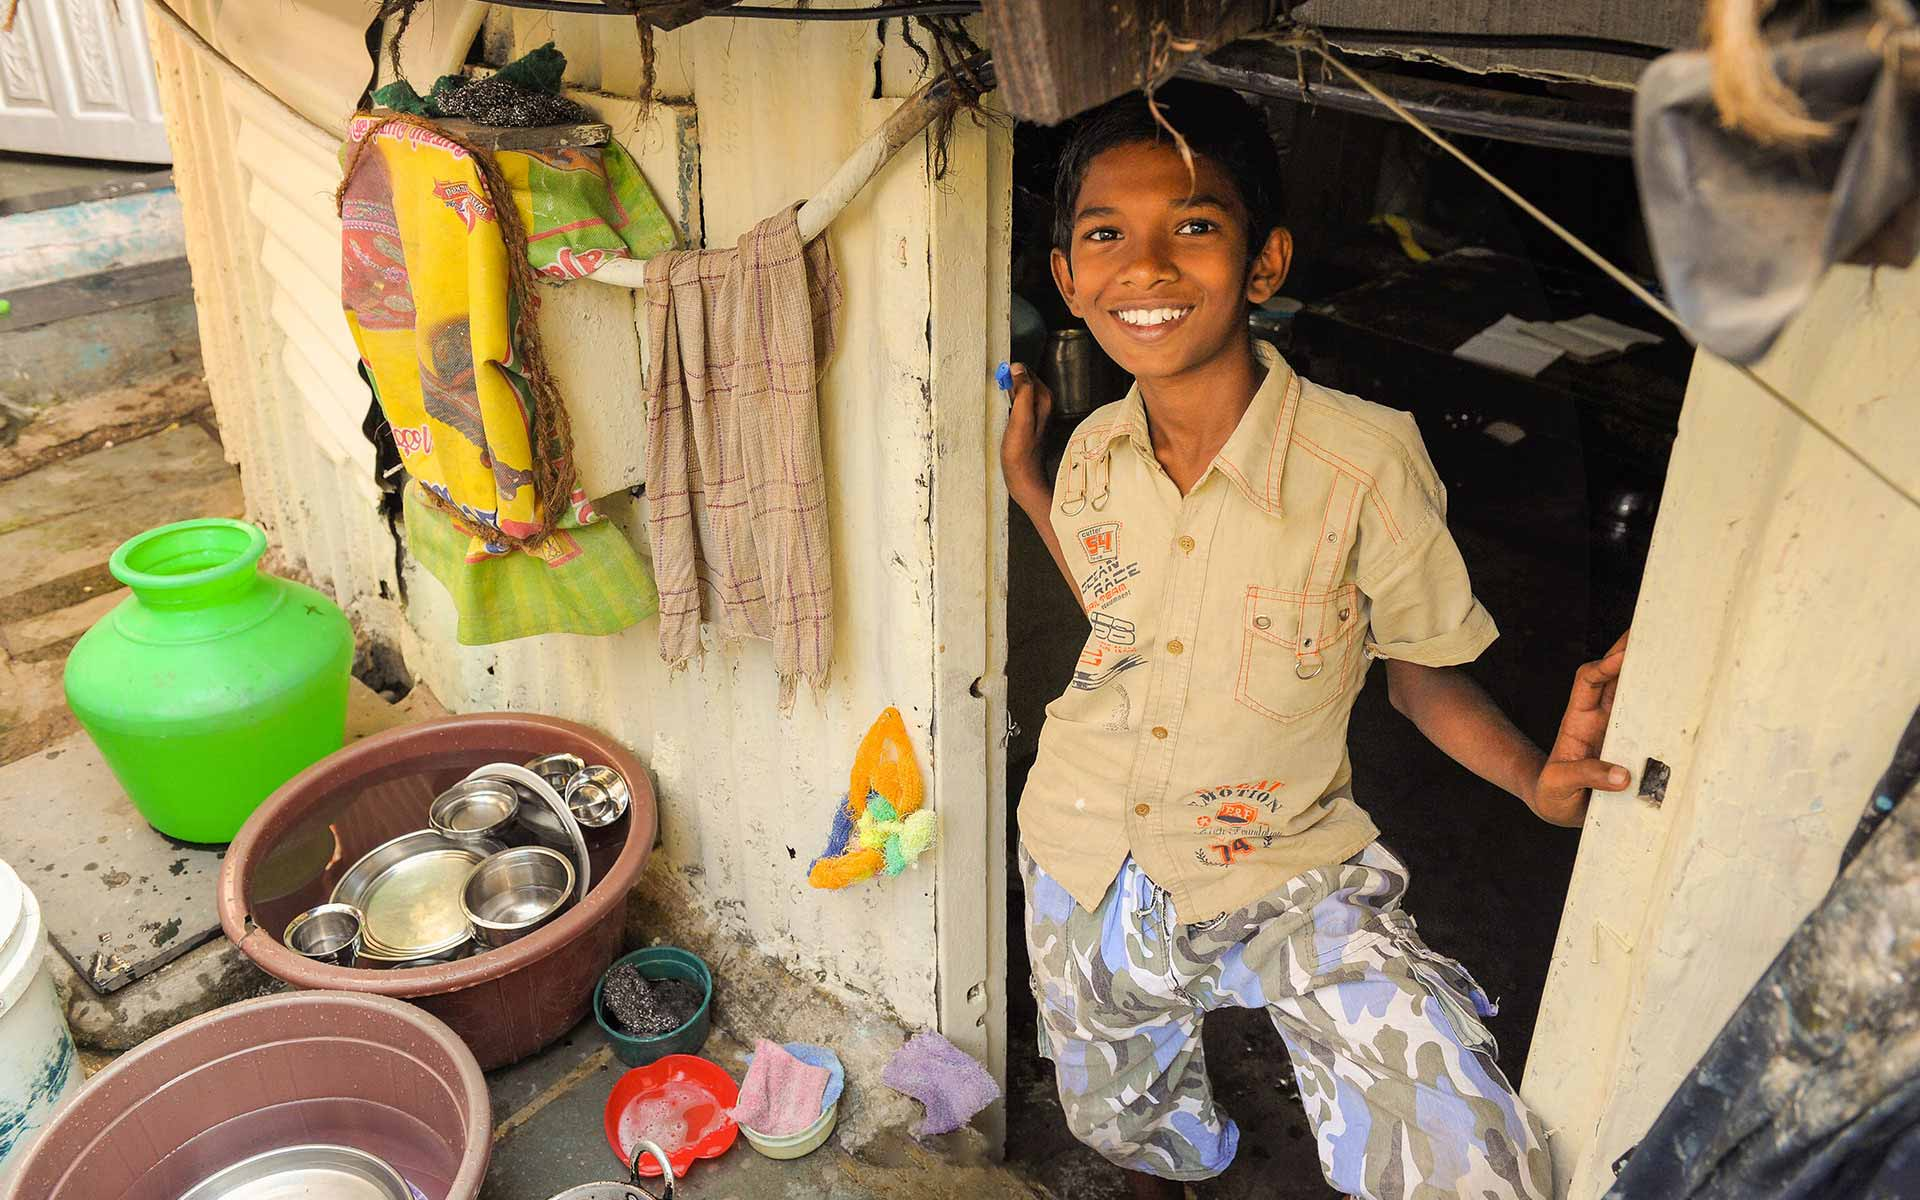 An Indian boy stands in the doorway of his home